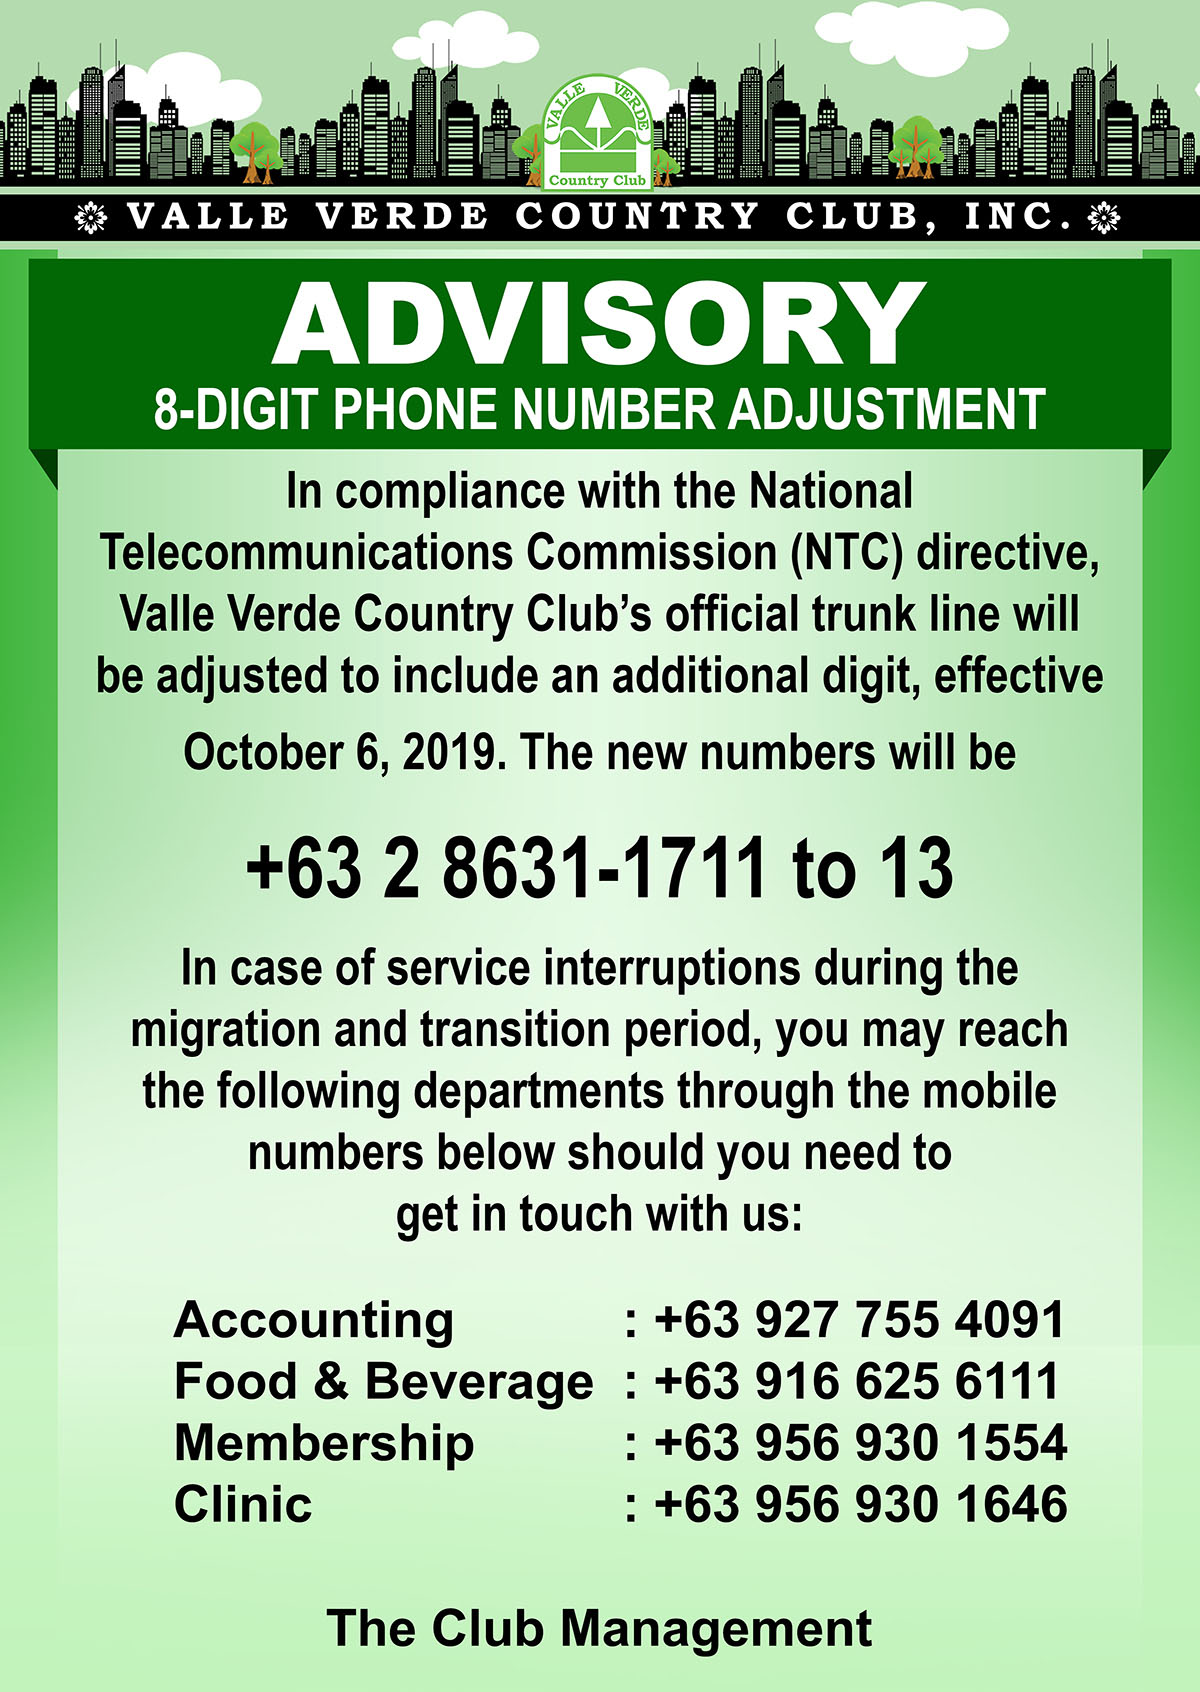 VVCCI Advisory 8-digit phone adjustment